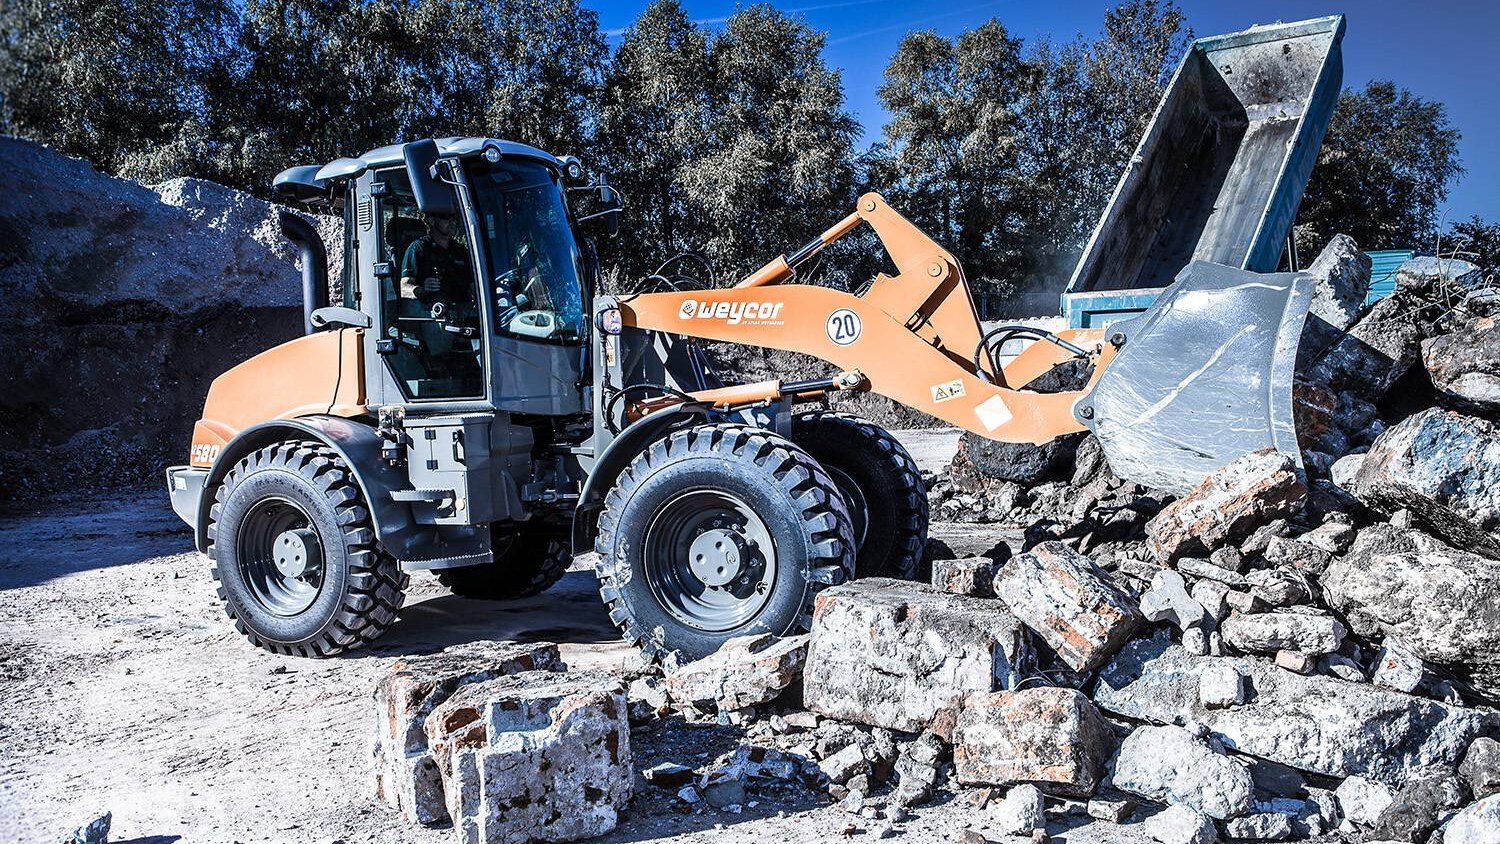 Gallery image 0 - - AR 580 -  * Shovel capacity: 1.8 m³ * Tear out force: 7,000 daN * Torque: 6,190 daN * Tipping load, straight: 7,573 kg * Tipping load, articulated: 6,706 kg * Lifting capacity at ground level: 8,200 daN * Operating weight: 9,600 kg